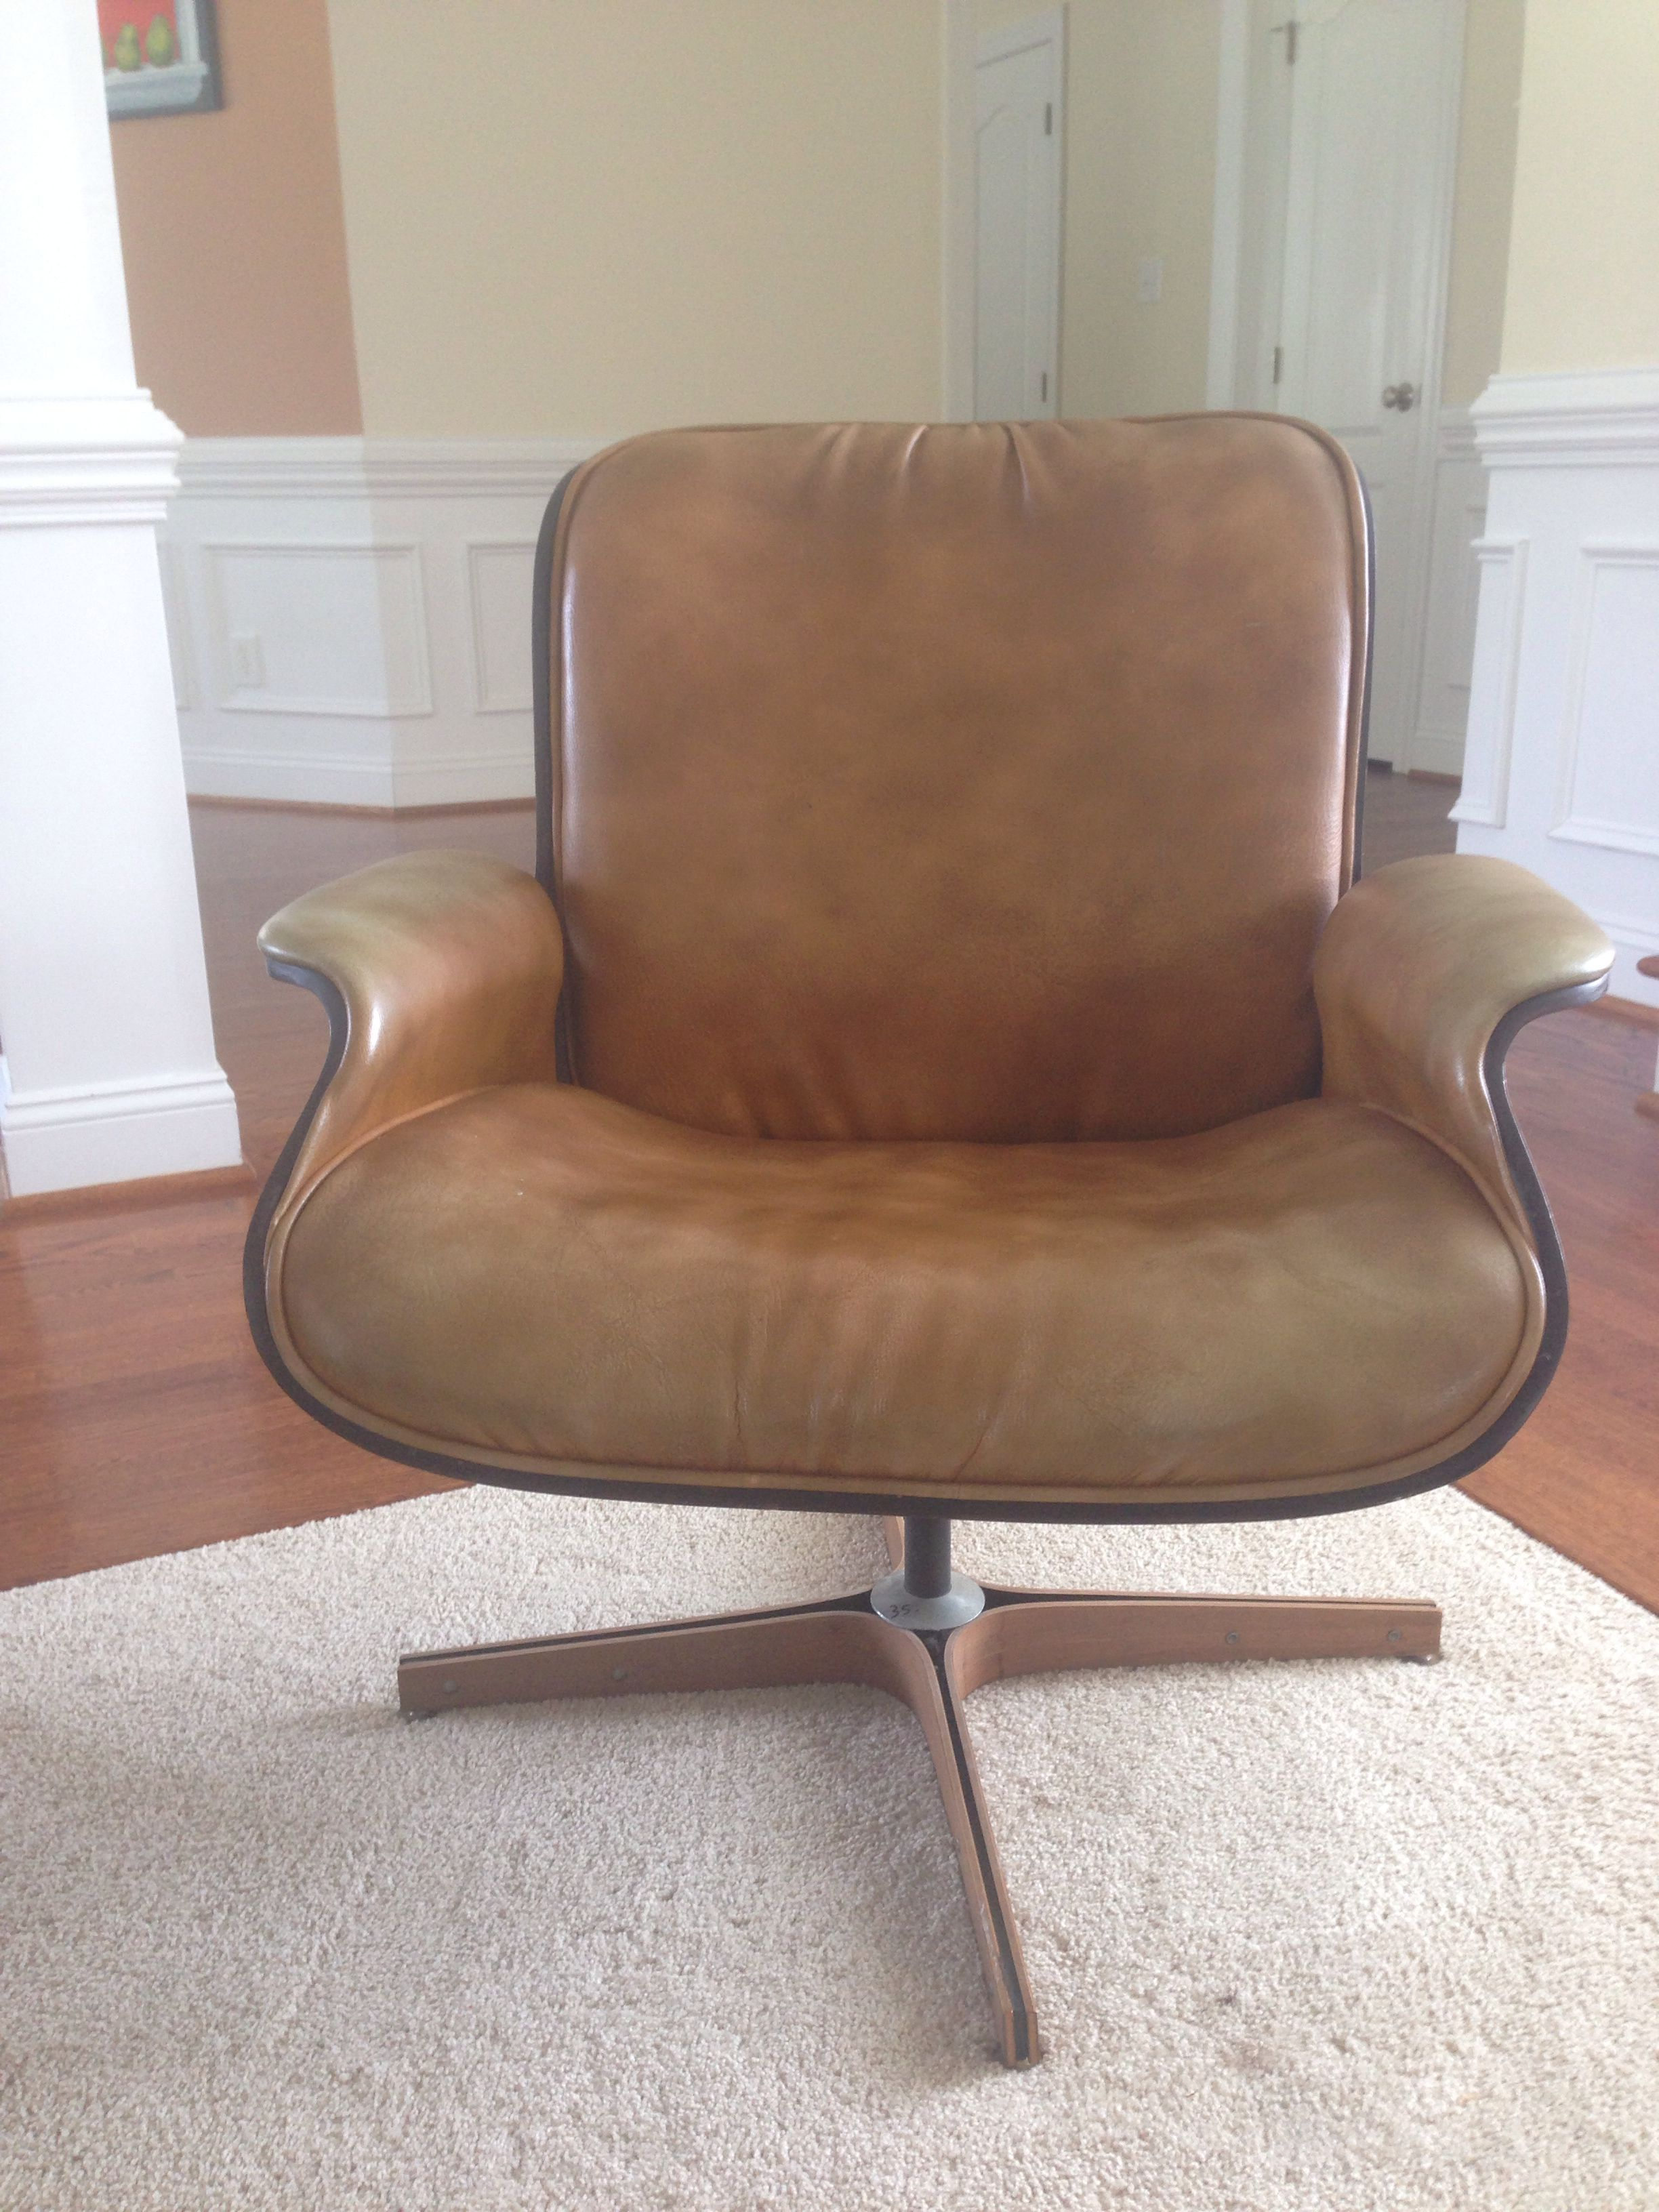 Mulhauser swivel chair. Chair, Furniture, Swivel